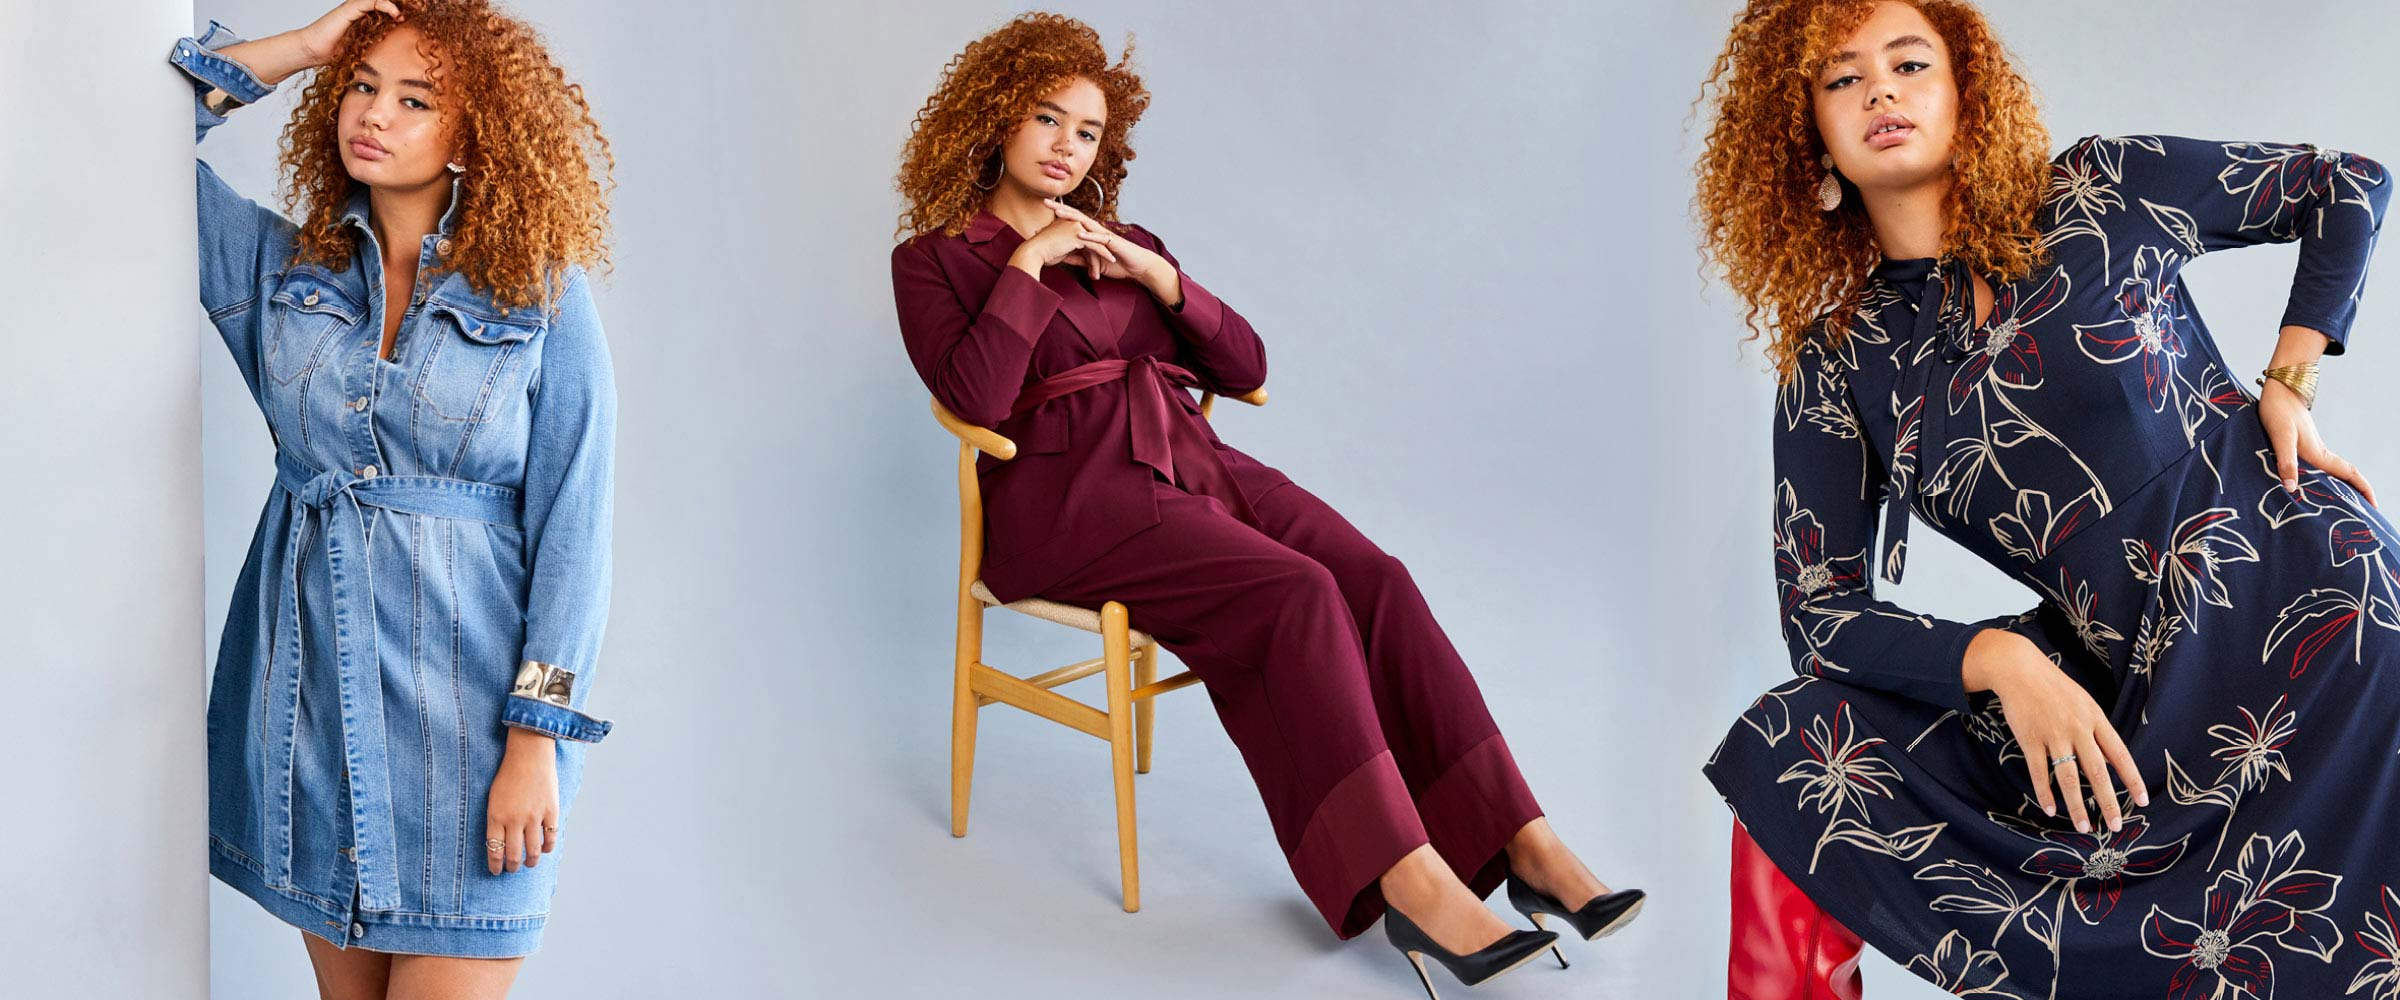 A woman models multiple Eloquii brand outfits